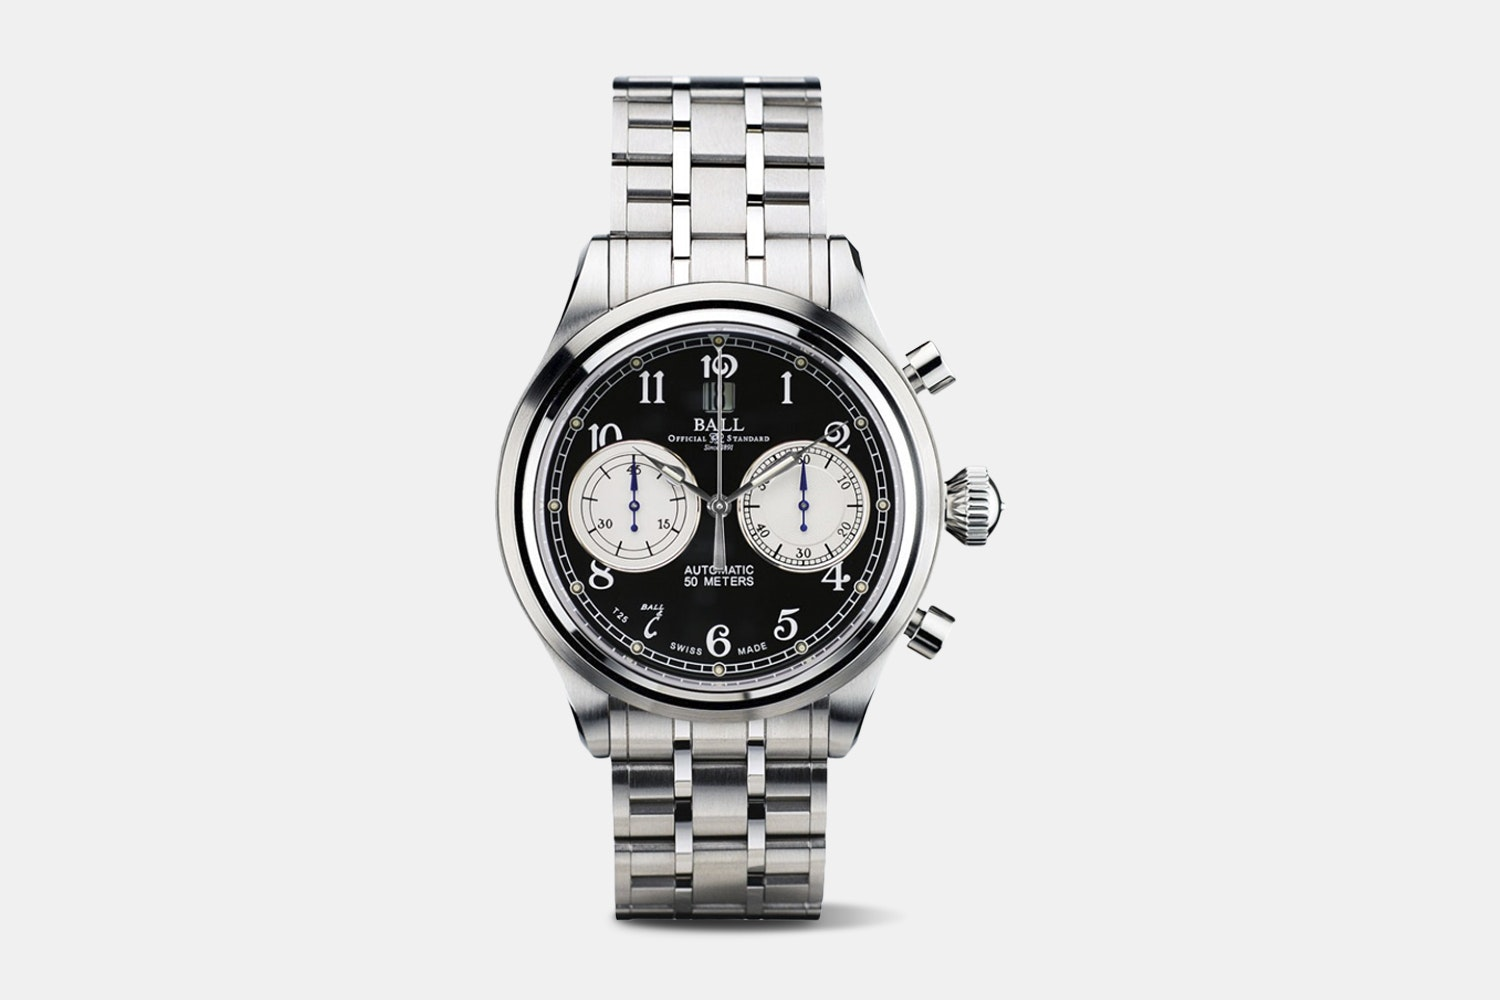 Ball Trainmaster Cannonball Automatic Watch